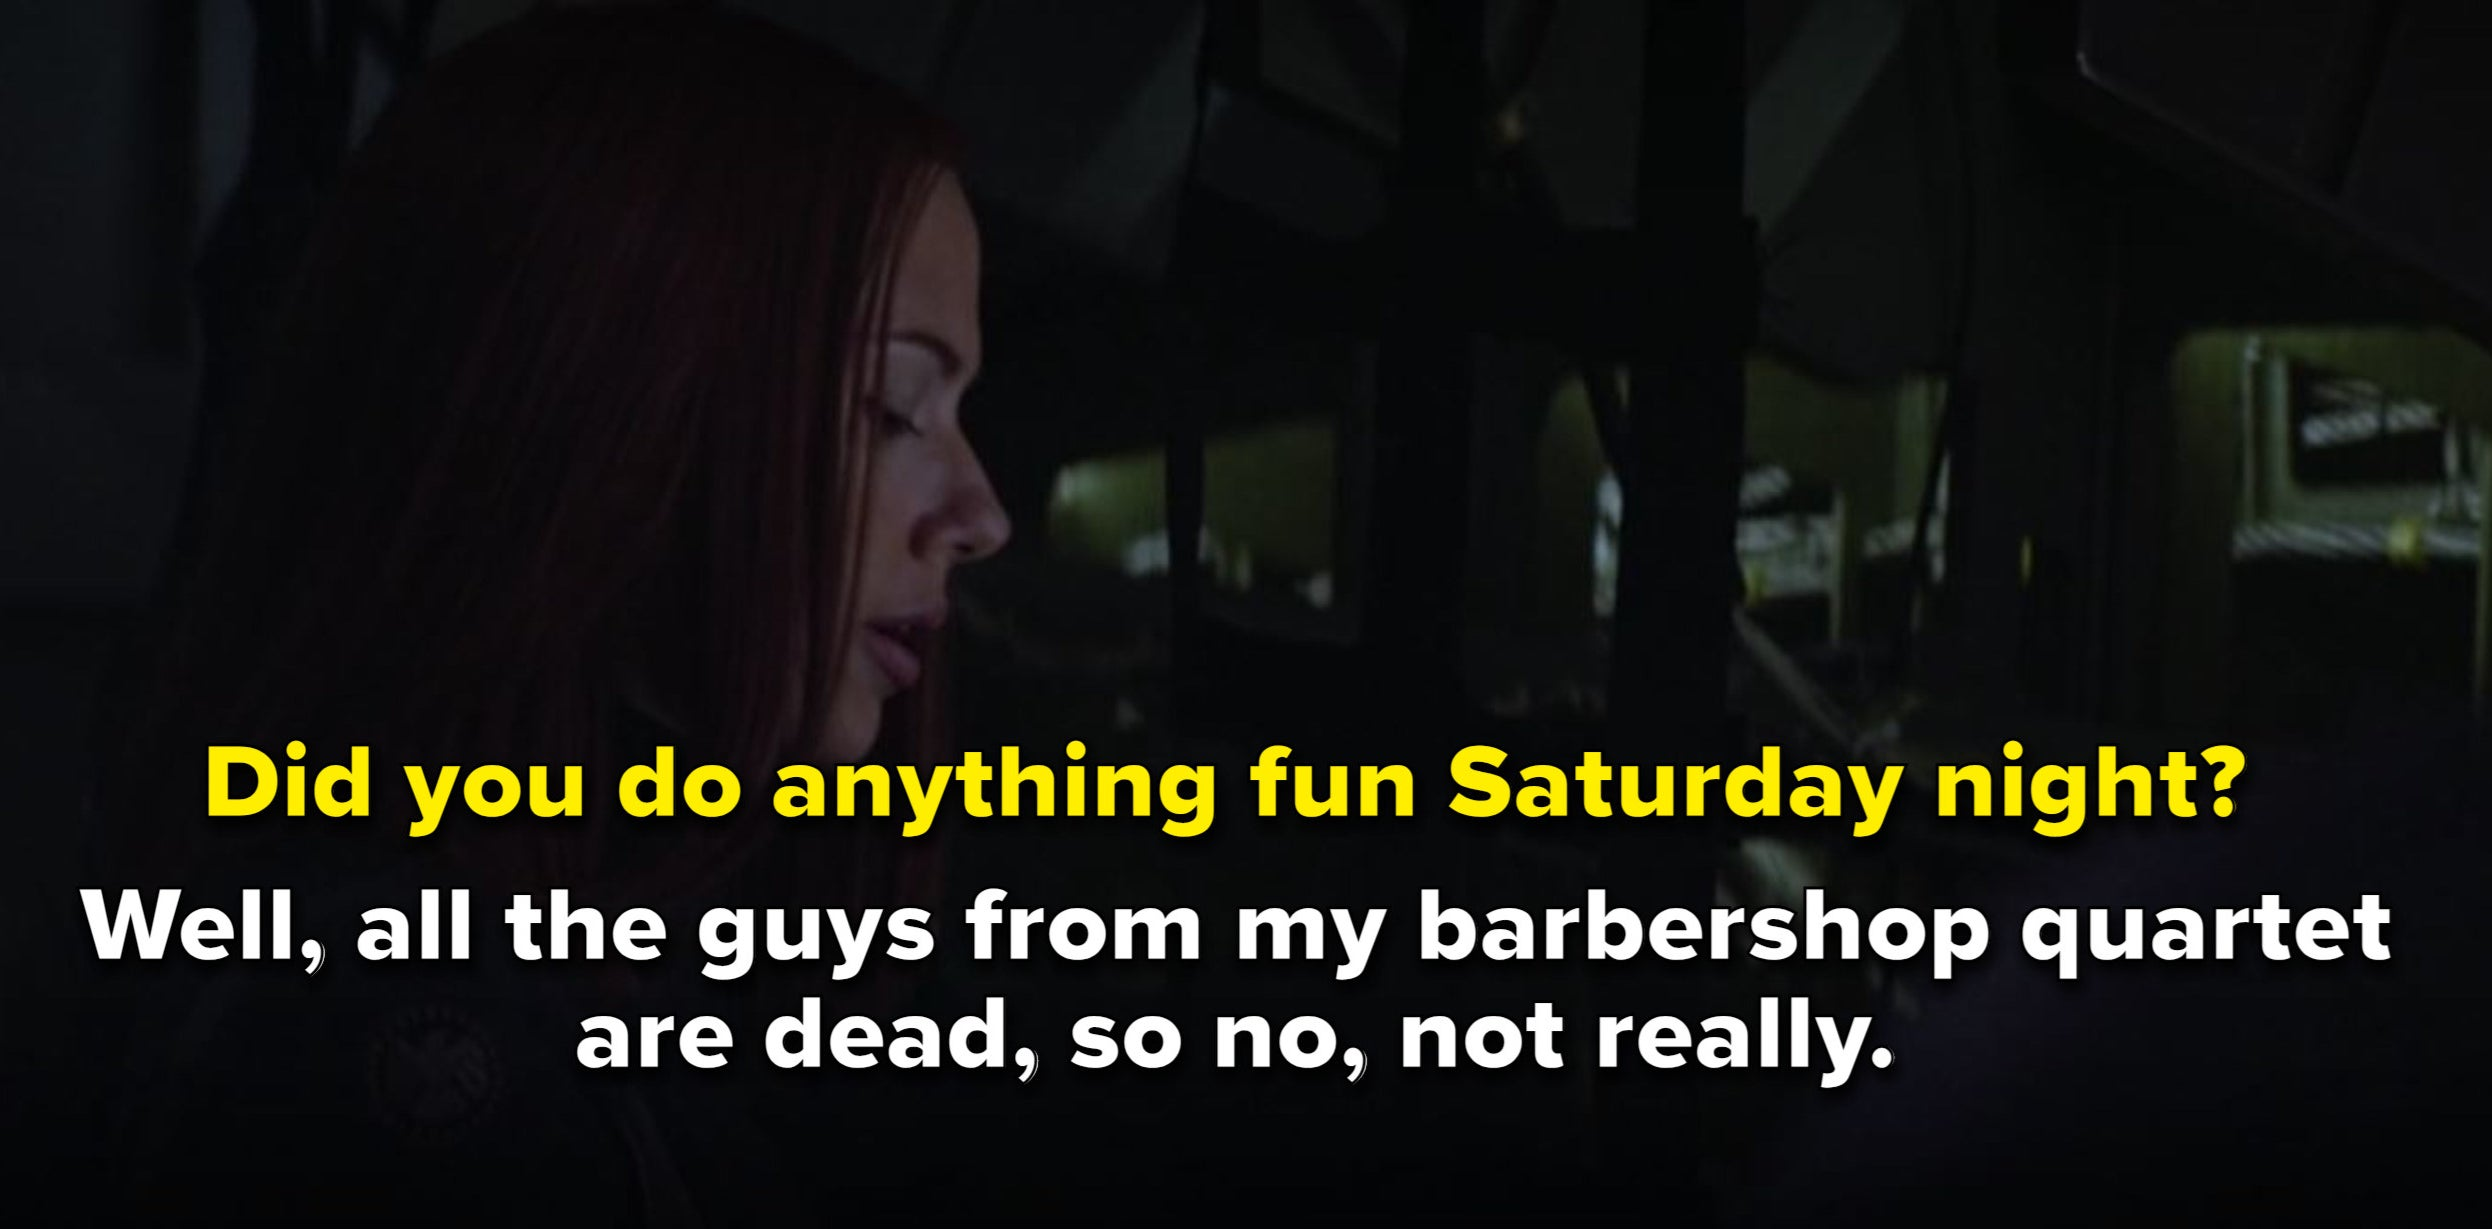 Black Widow asks Cap if he did anything on Saturday night and he deadpans that all of his barbershop quartet are dead